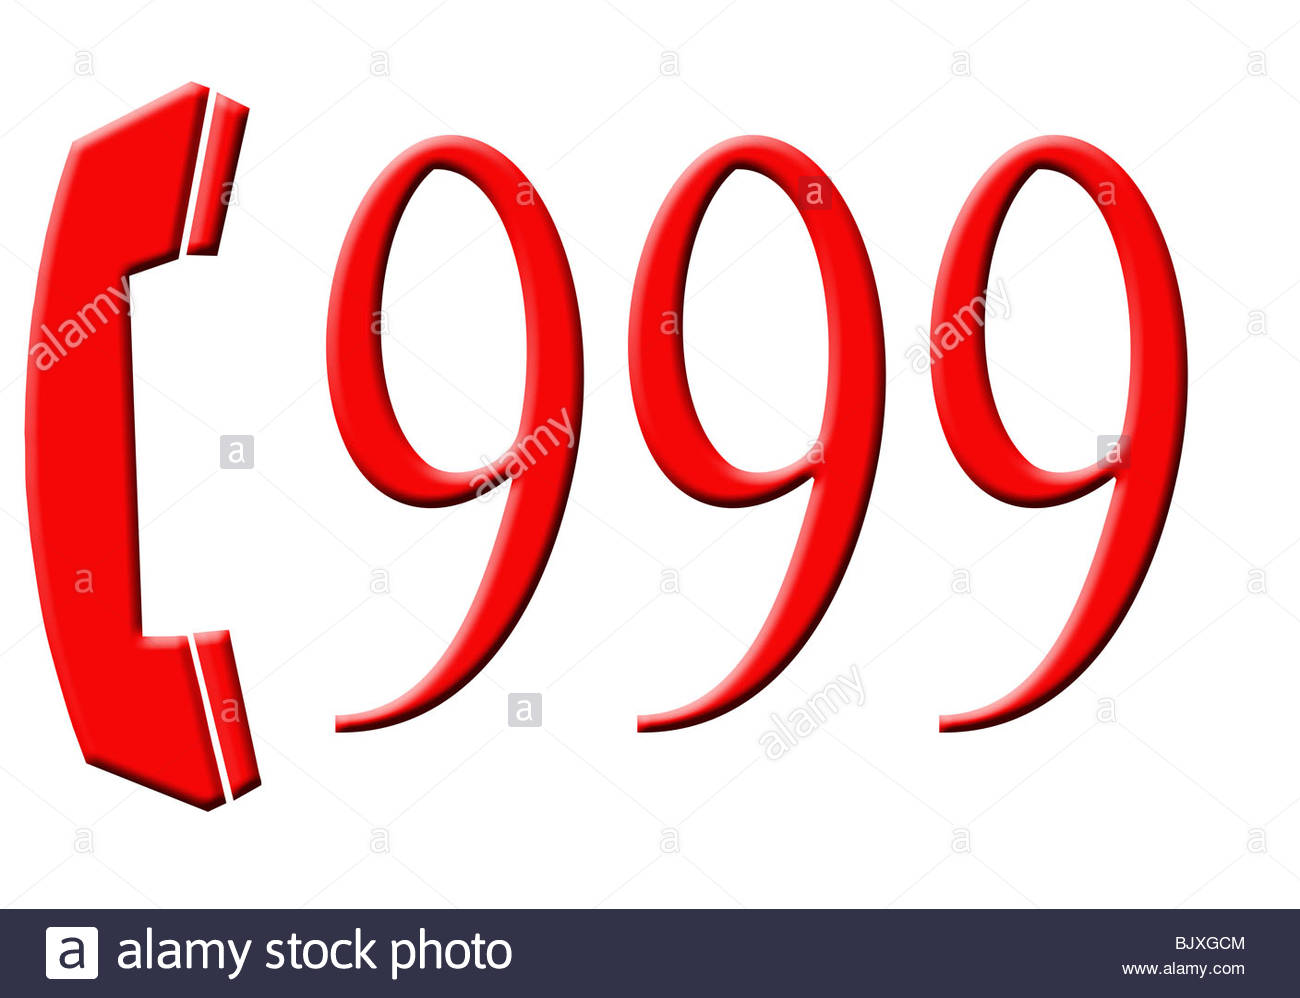 999 Stock Photos Amp 999 Stock Images Alamy